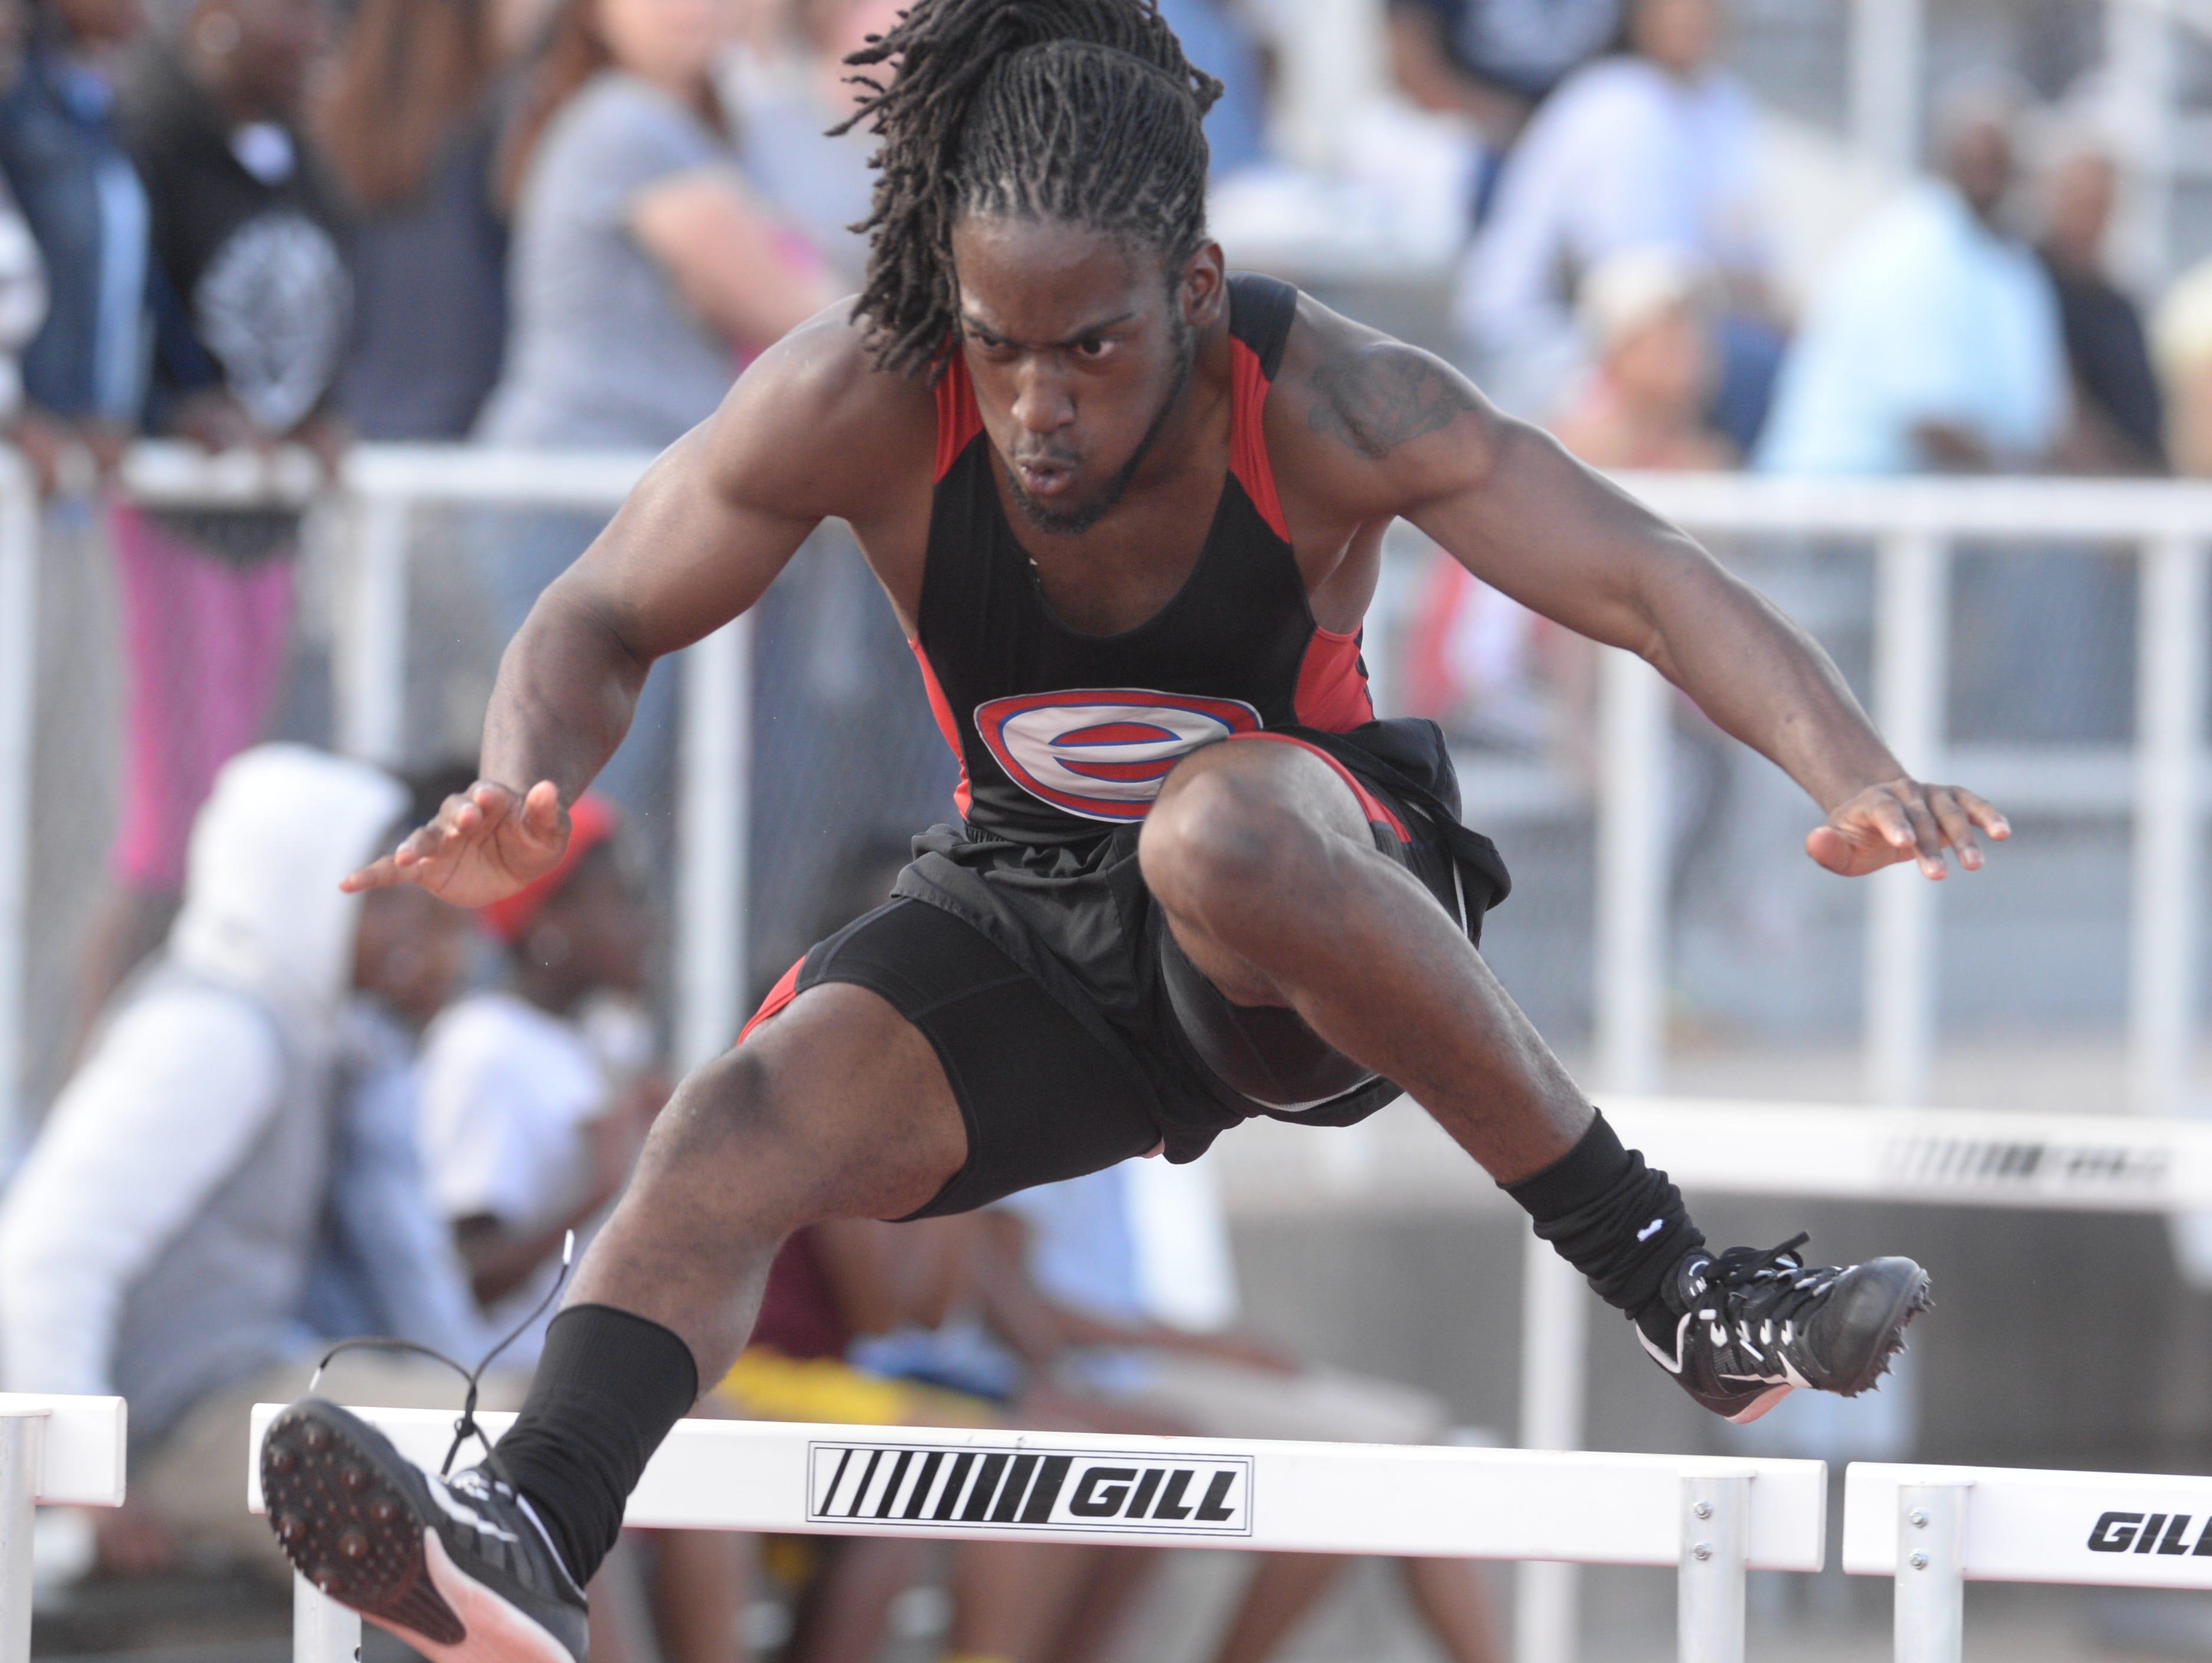 Evangel's Tyler Anderson clears the hurdle durimg his heat of the 110M hurdles at the Shreveport relays.